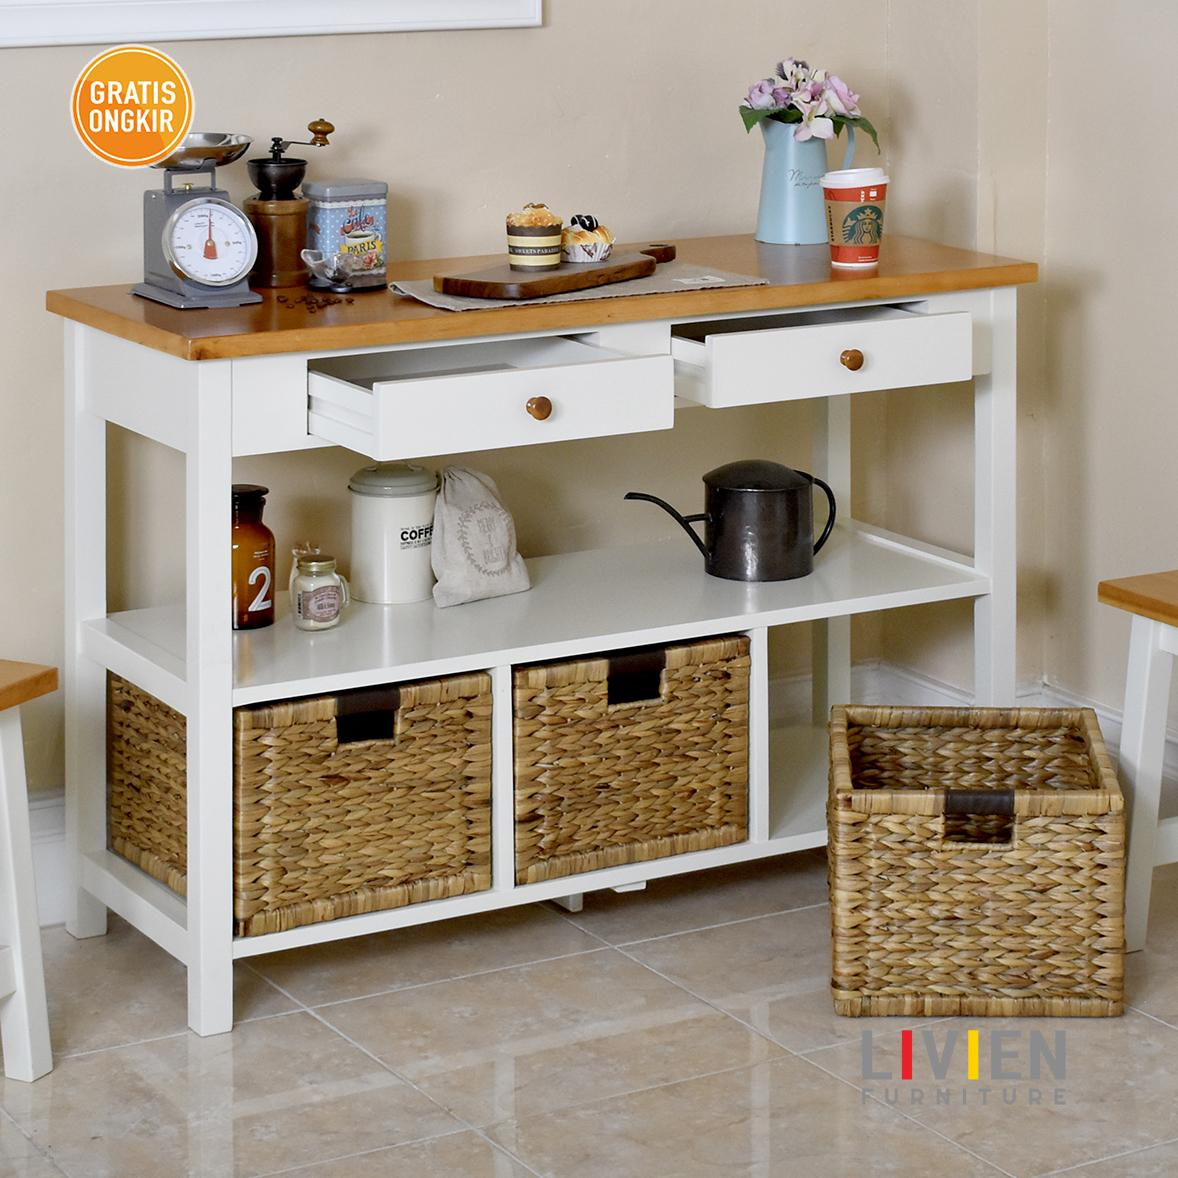 Fitur Livien Furniture Storage Bench Maple Story Multifungsi Desktop Keranjang Meja Konsol Dapur